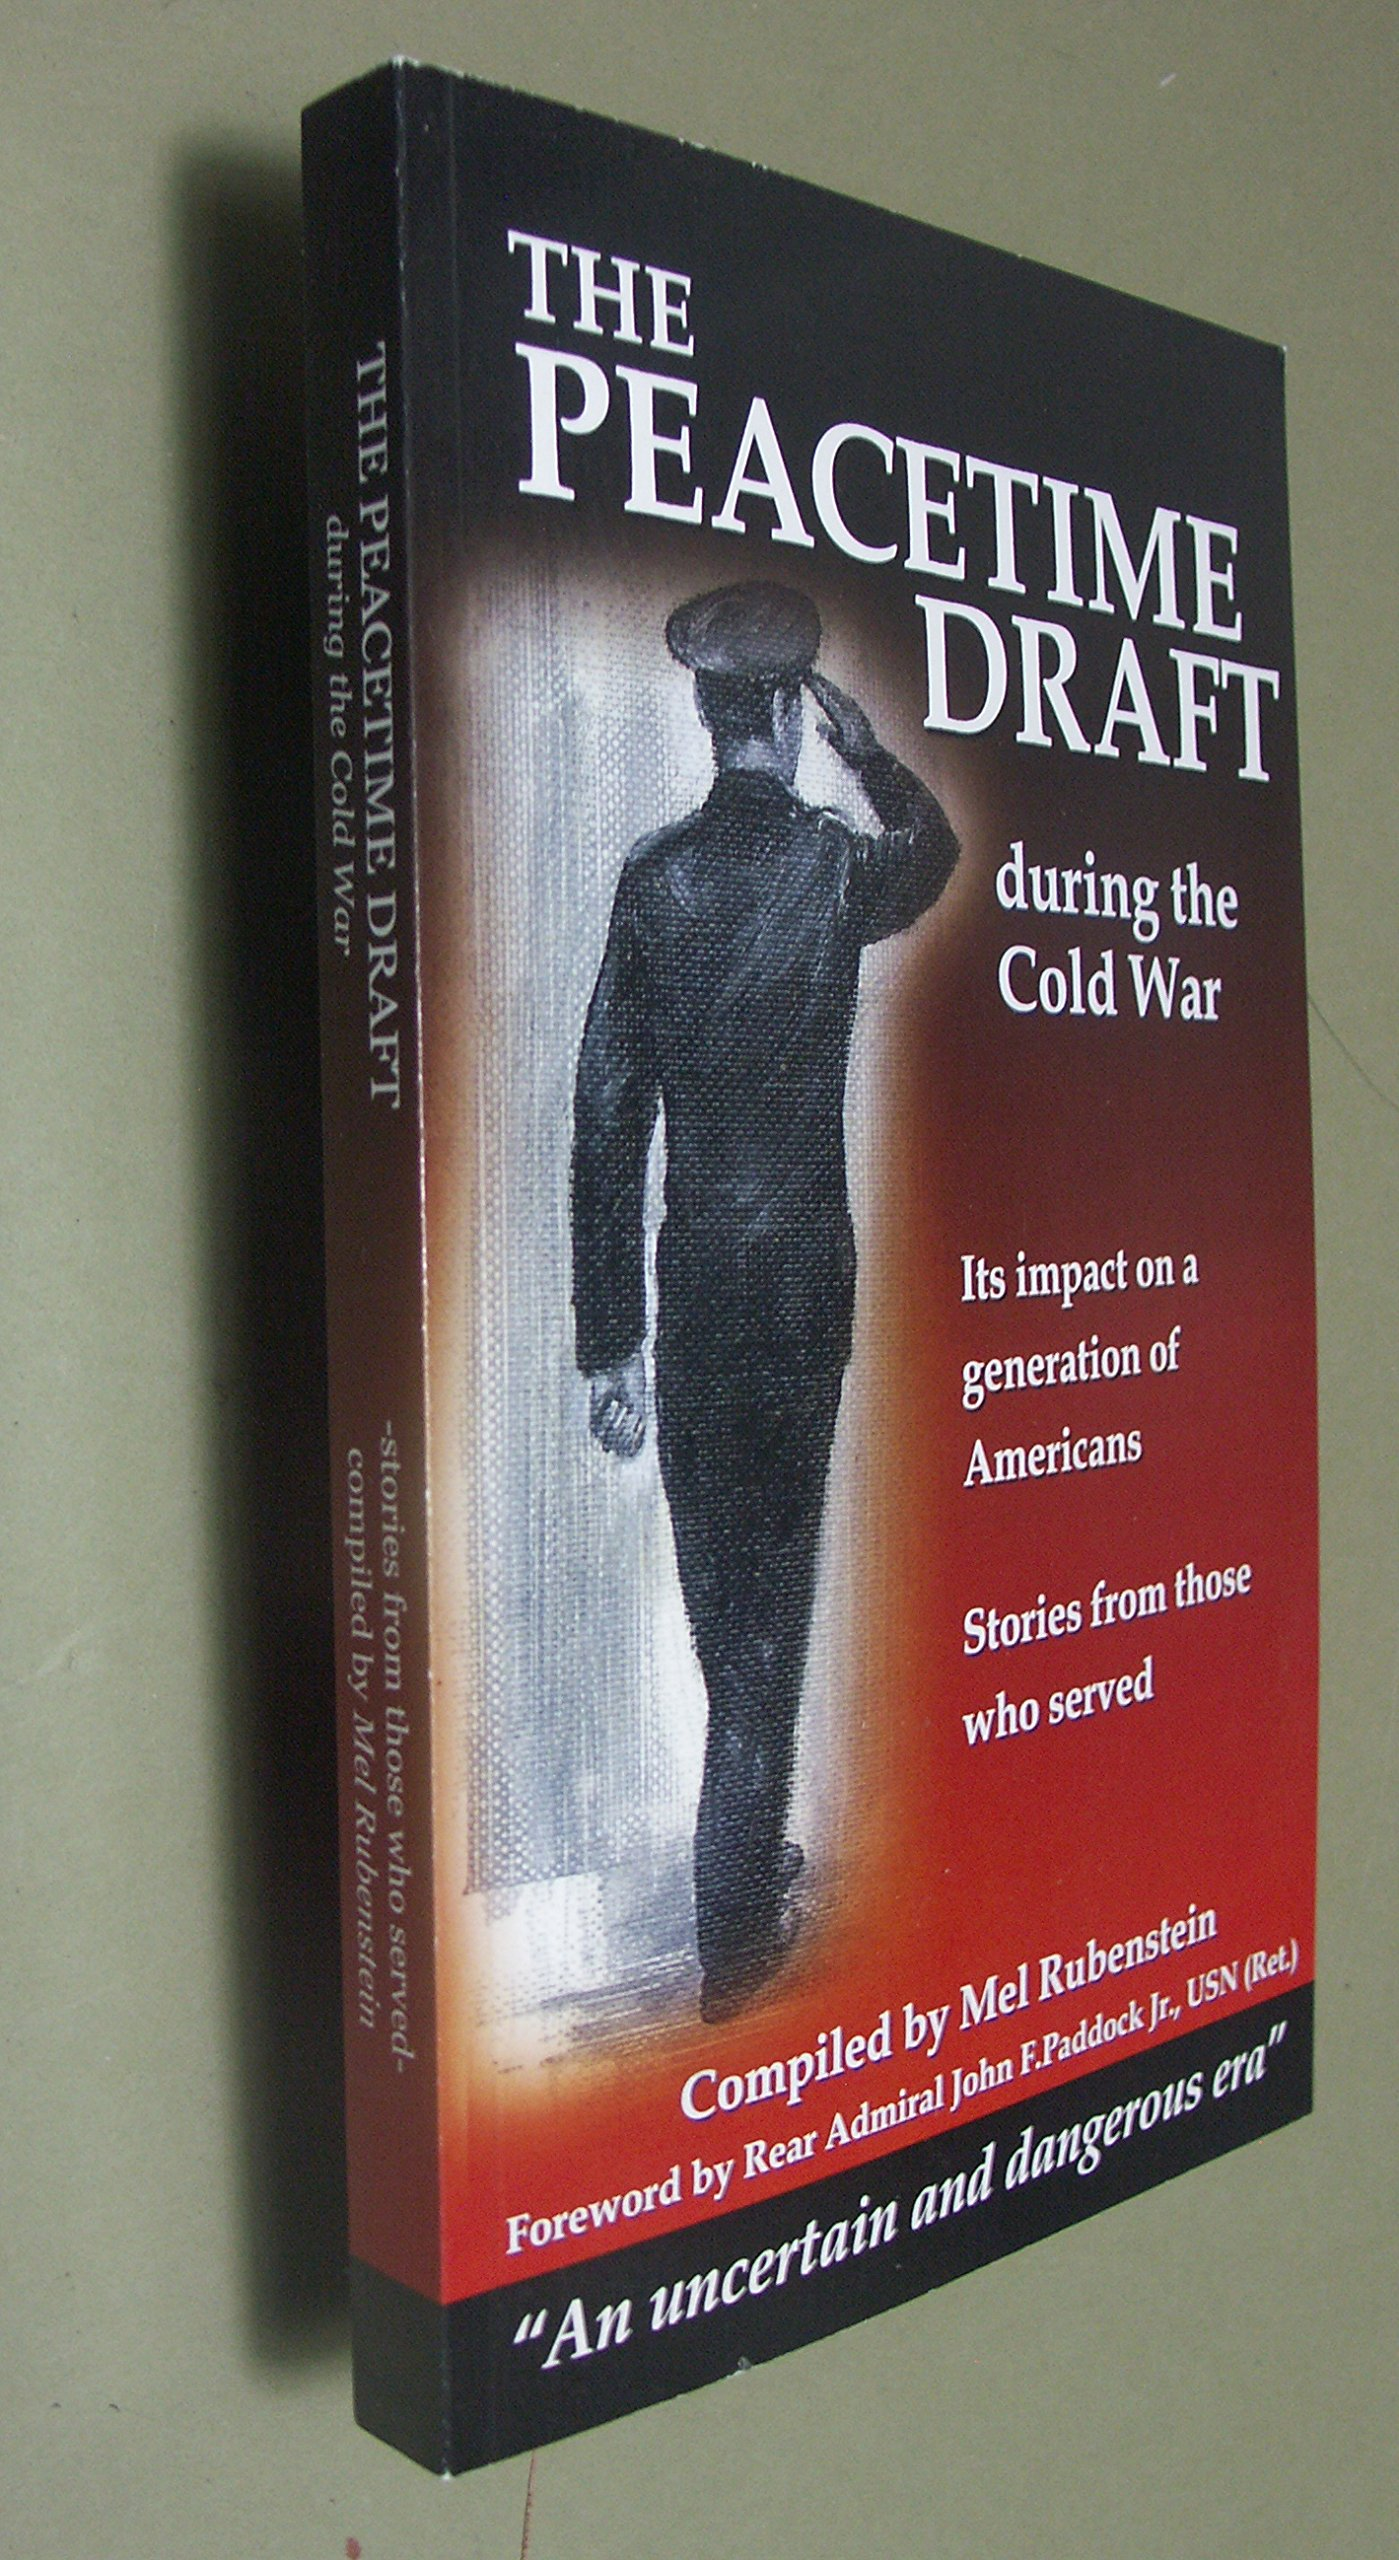 Download The Peacetime Draft During the Cold War 1953-1964: Its Impact on a Generation of Americans (Stories From Those Who Served) pdf